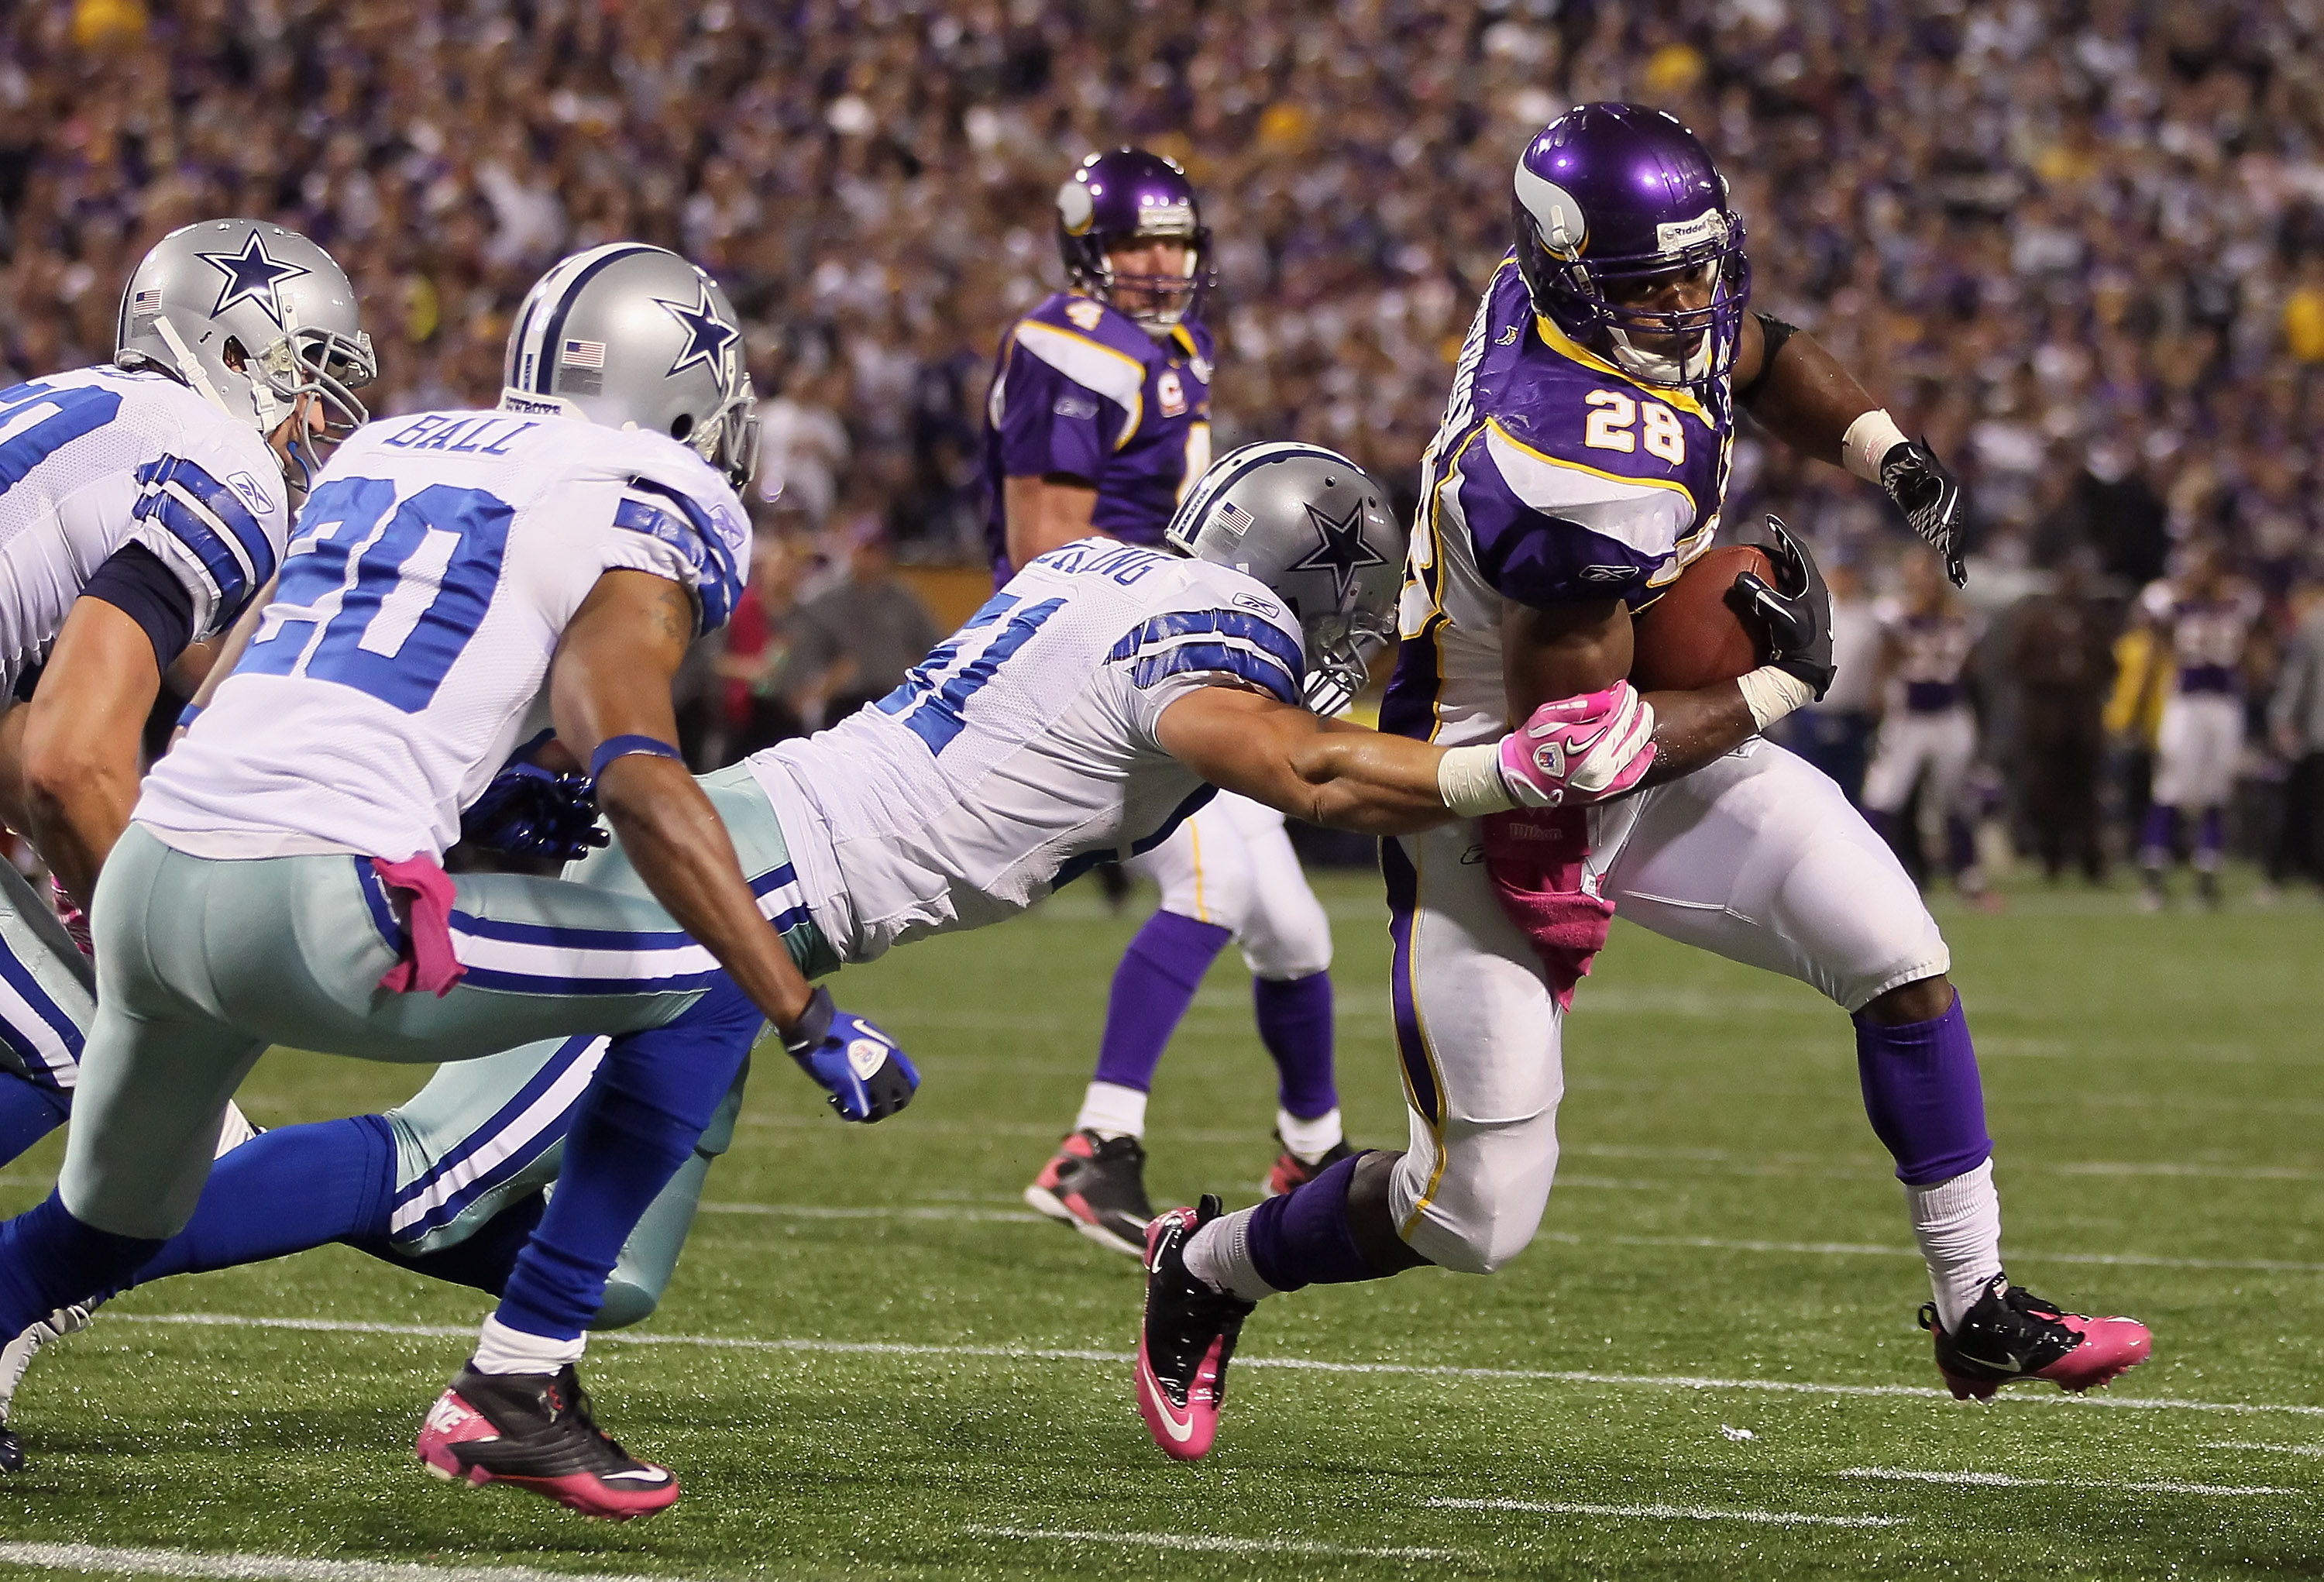 MINNEAPOLIS - OCTOBER 17:  Running back Adrian Peterson #29 of the Minnesota Vikings breaks a tackle from Keith Brooking #51 of the Dallas Cowboys for a touchdown during the third quarter at Mall of America Field on October 17, 2010 in Minneapolis, Minnes